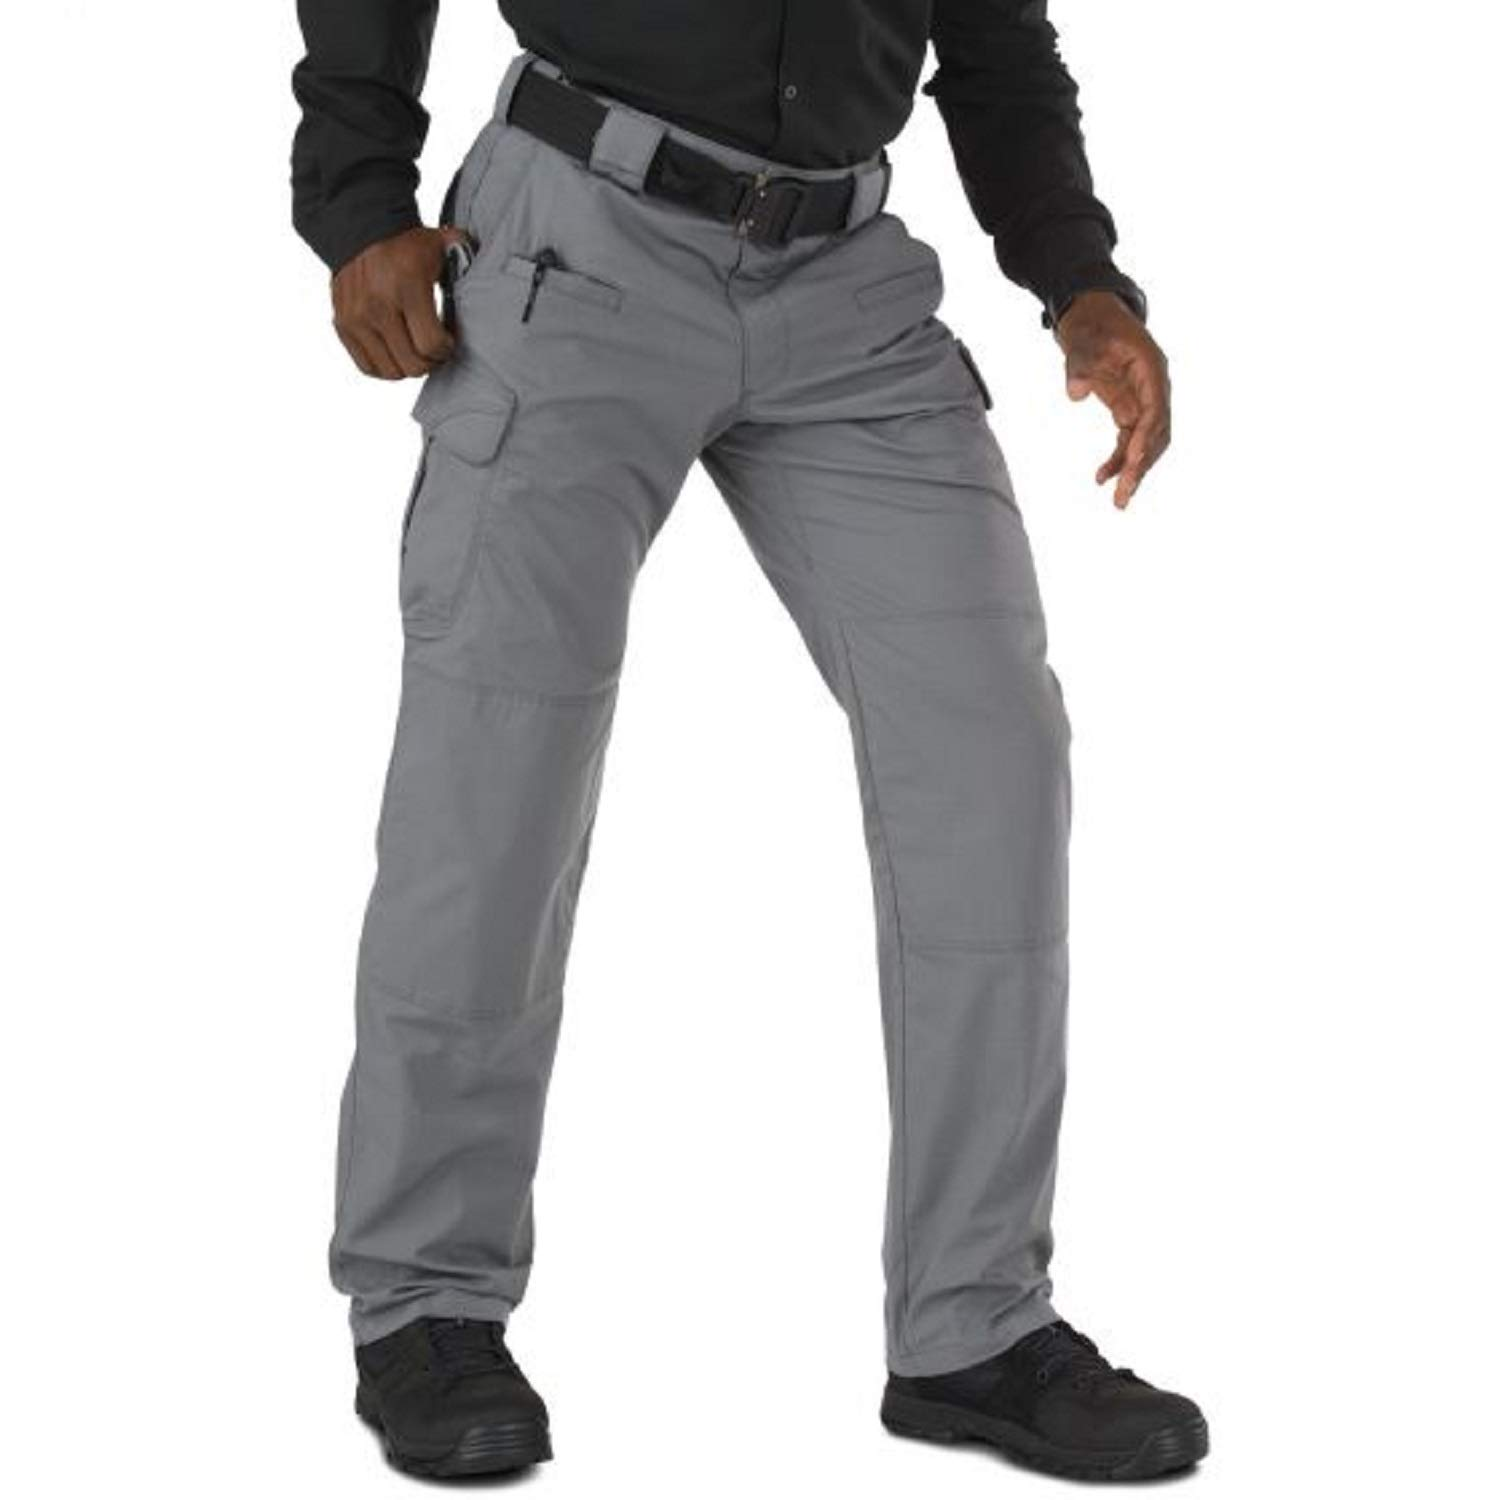 5.11 Tactical Stryke Pant With Flex-Tac TM,32W-30L,Storm